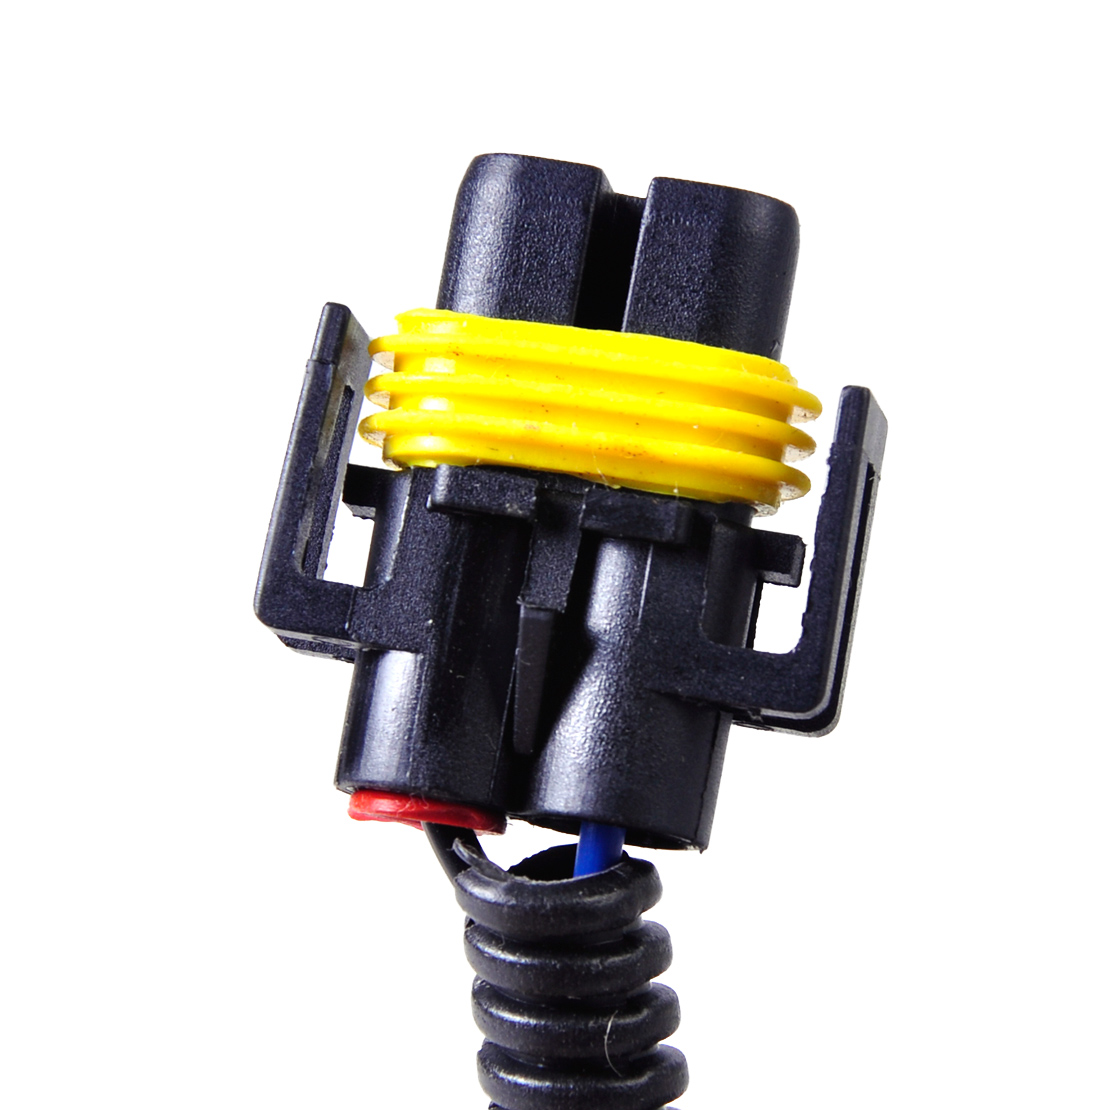 Beler New Arrival H11 Female Adapter Wiring Harness Sockets Wire 2012 Dodge Avenger Connector For Fog Light Lamp Ford Focus Acura Nissan Honda In From Automobiles